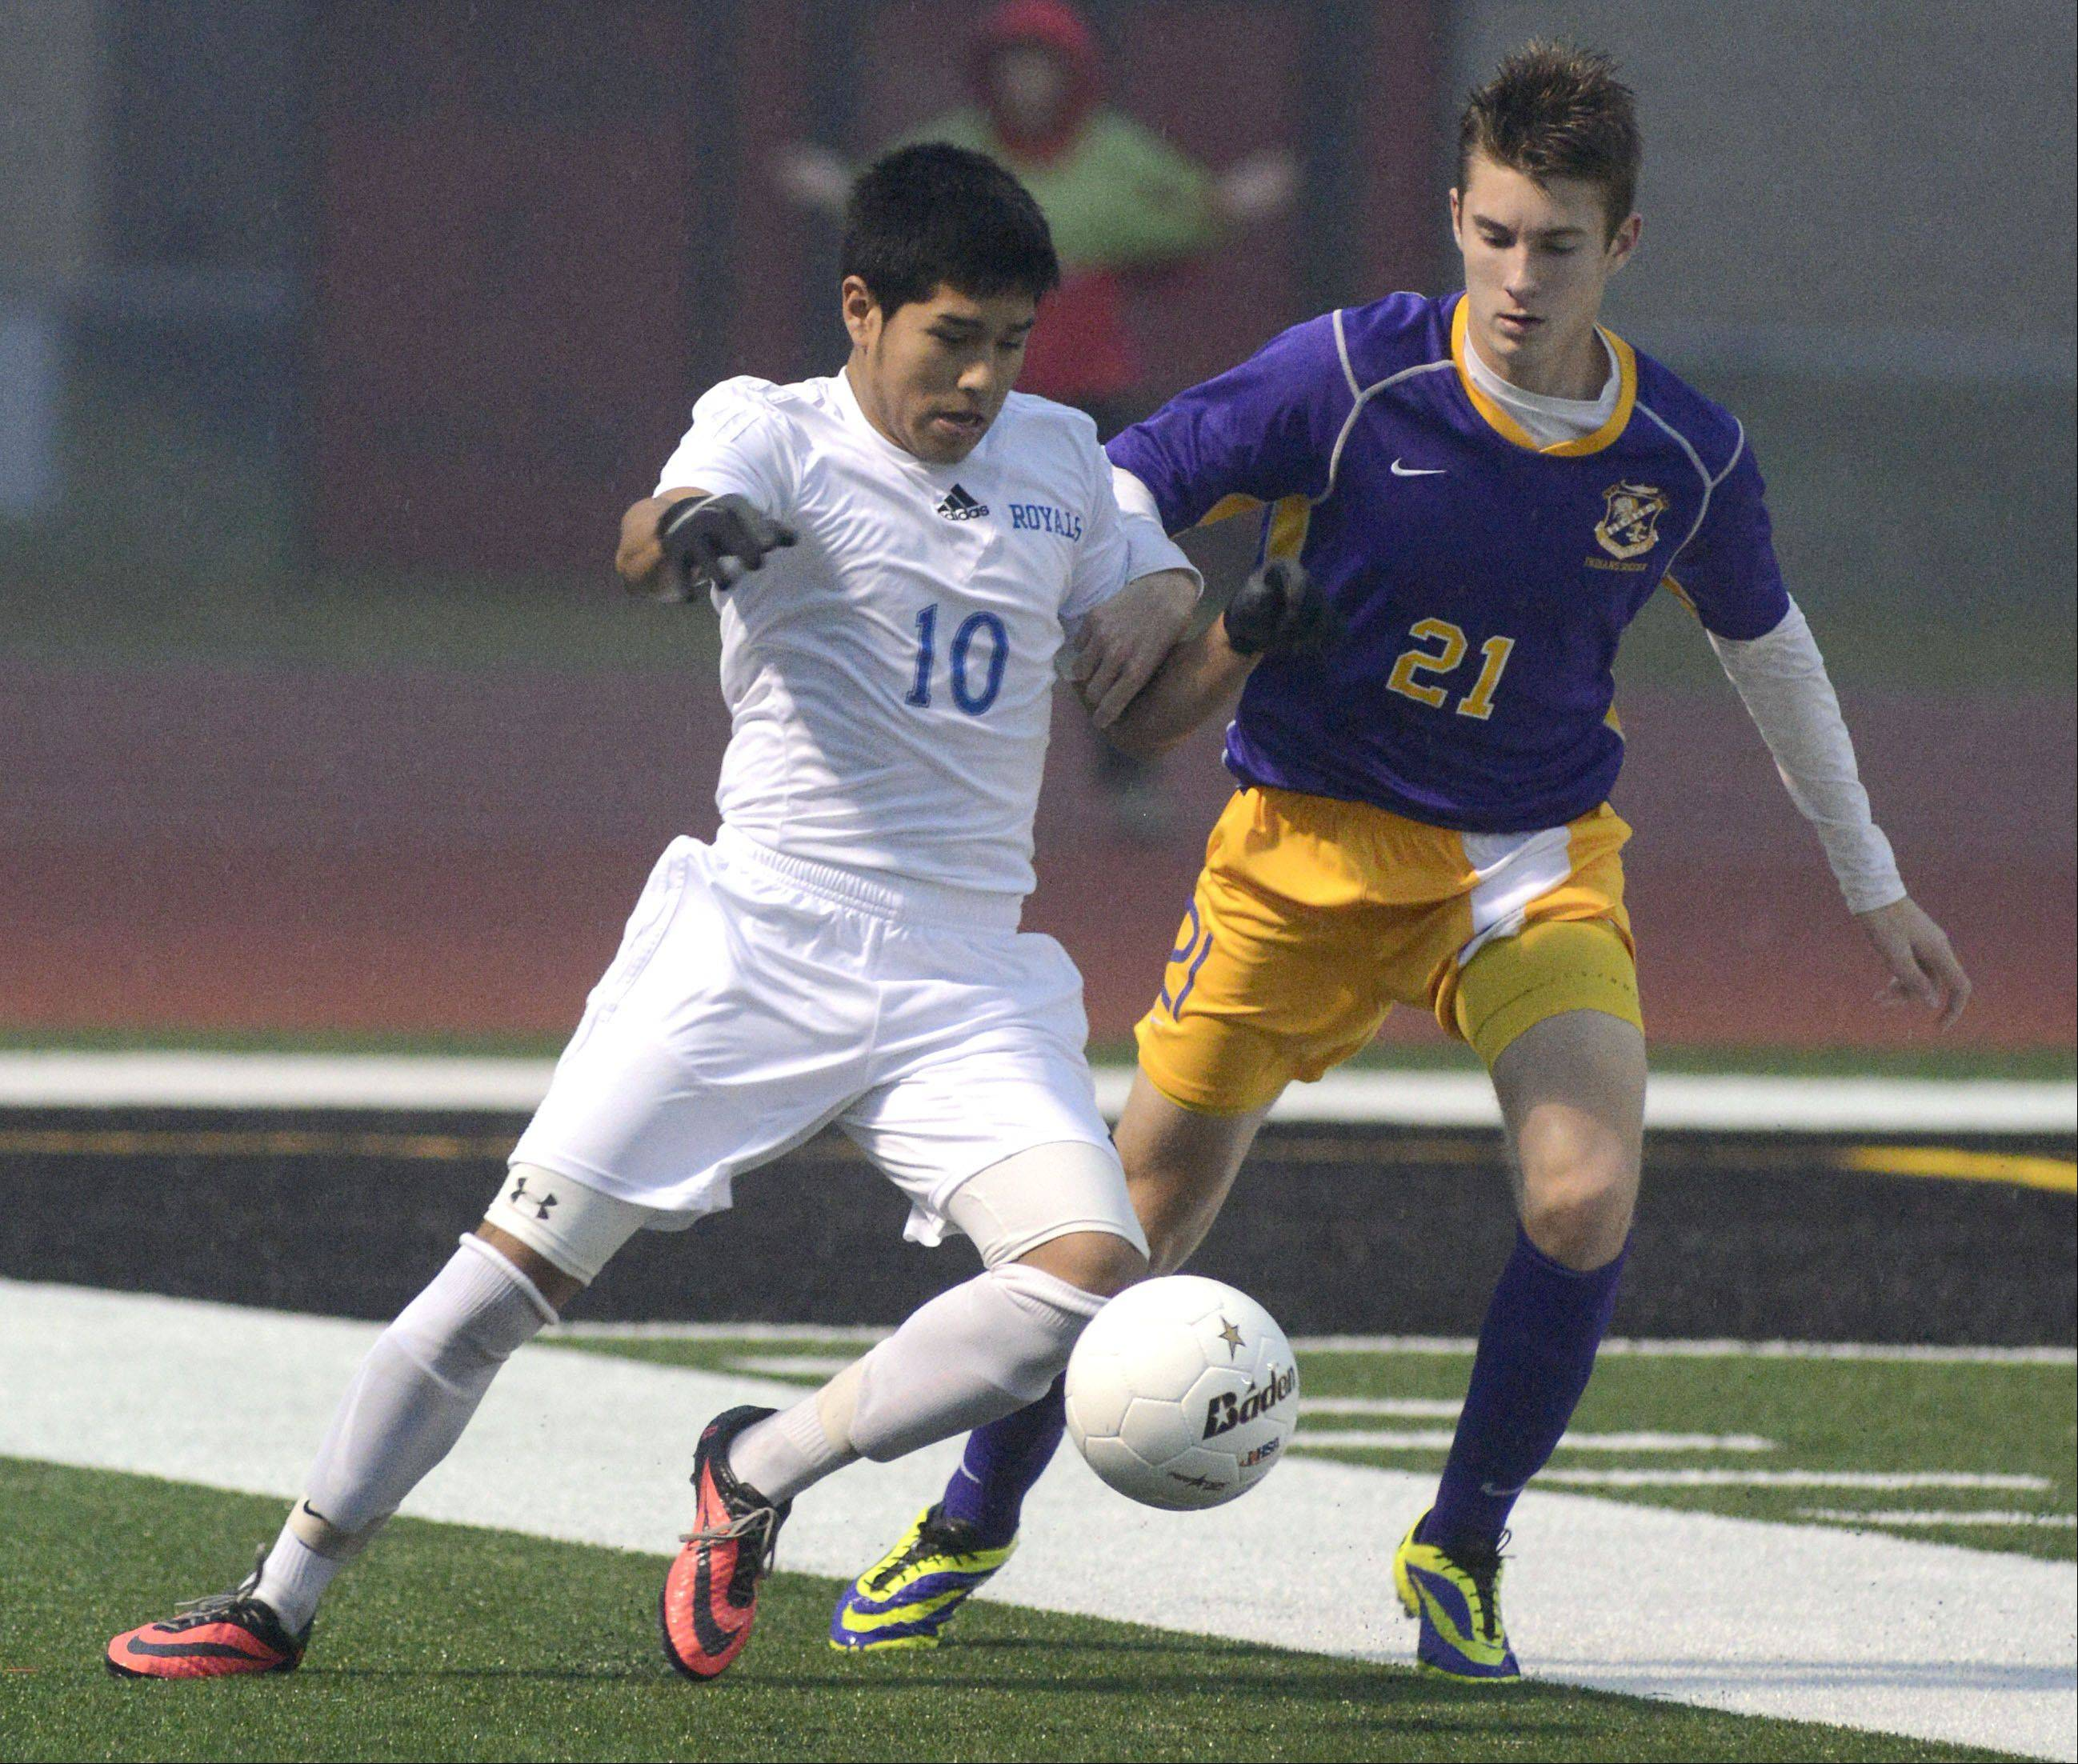 Larkin's Gonsalo Garcia and Hononegah's Brennan Nolting battle for the ball in the first half of the Huntley sectional semifinals on Wednesday, October 30.